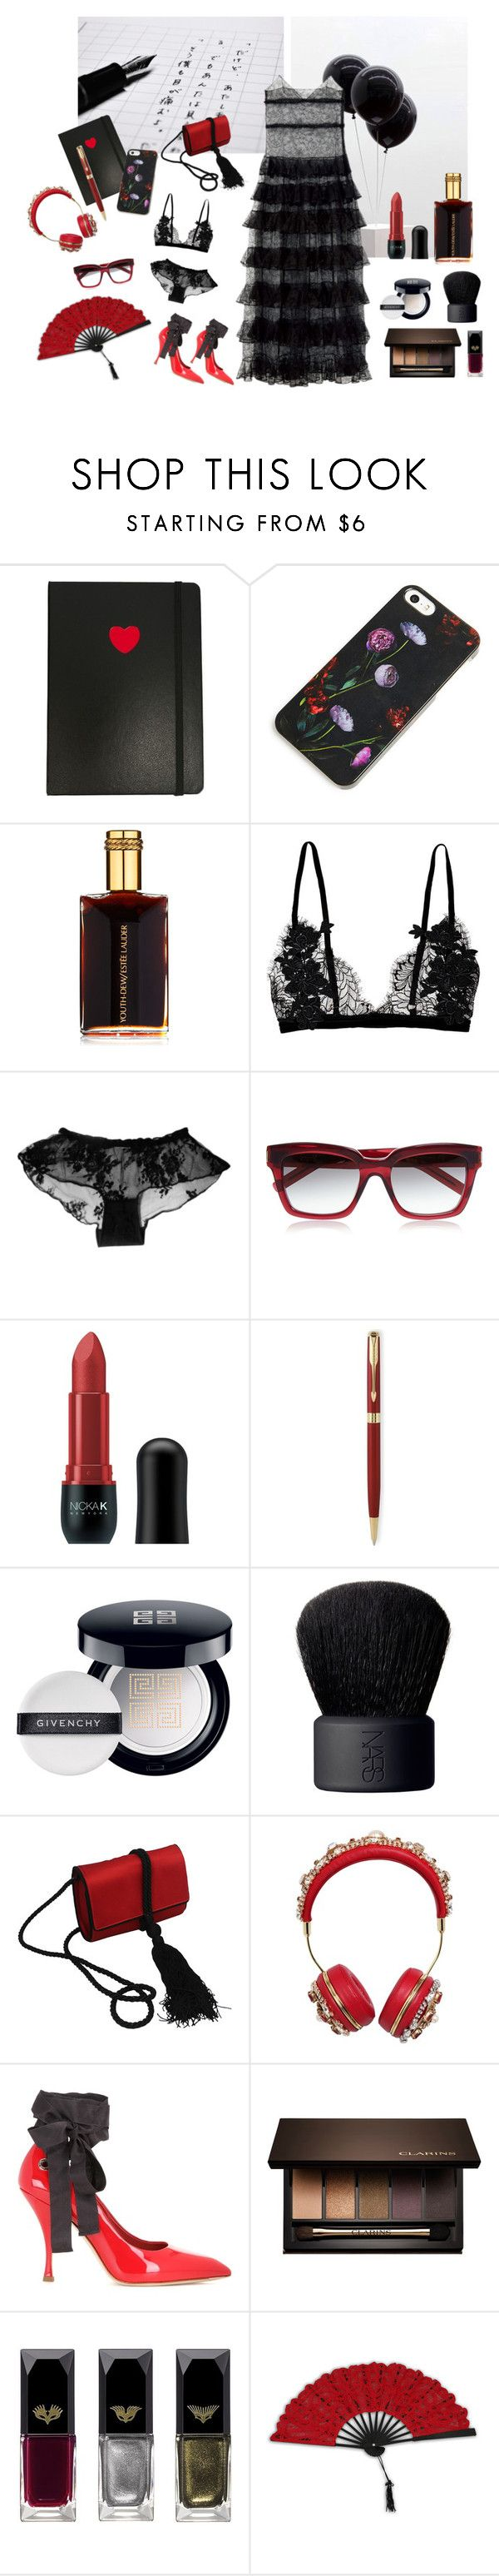 """The red shoes"" by nathalie-puex ❤ liked on Polyvore featuring Marc by Marc Jacobs, Erin Fetherston, Estée Lauder, Yves Saint Laurent, Nicka K, Parker, Givenchy, NARS Cosmetics, Salvatore Ferragamo and Dolce&Gabbana"